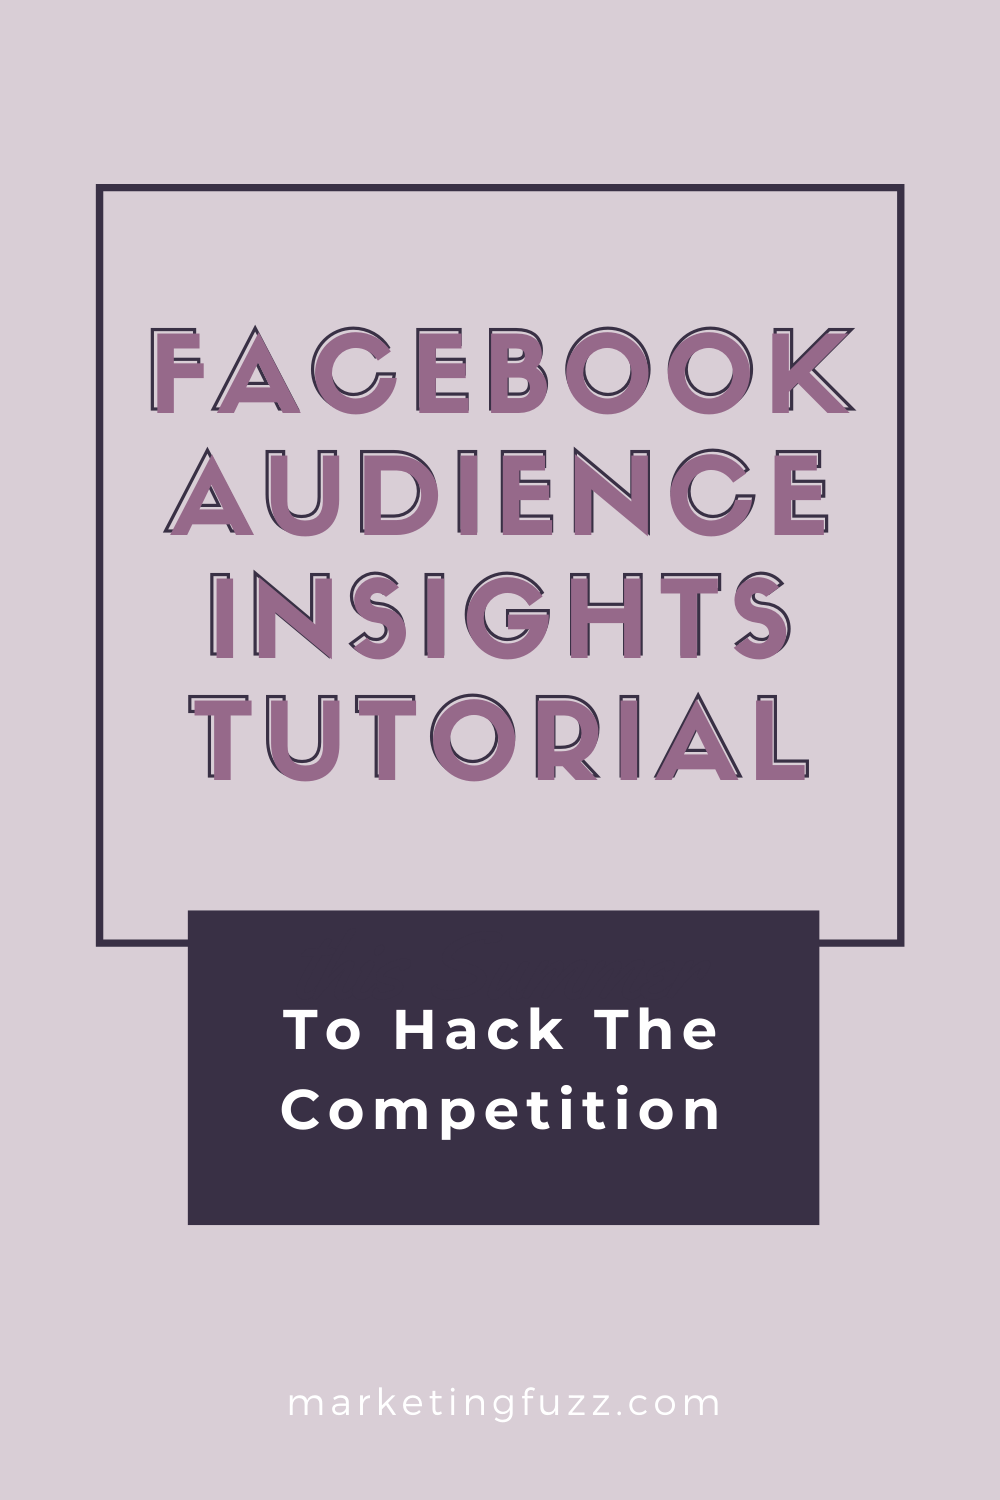 Facebook Audience Insights Tutorial To Hack The Competition